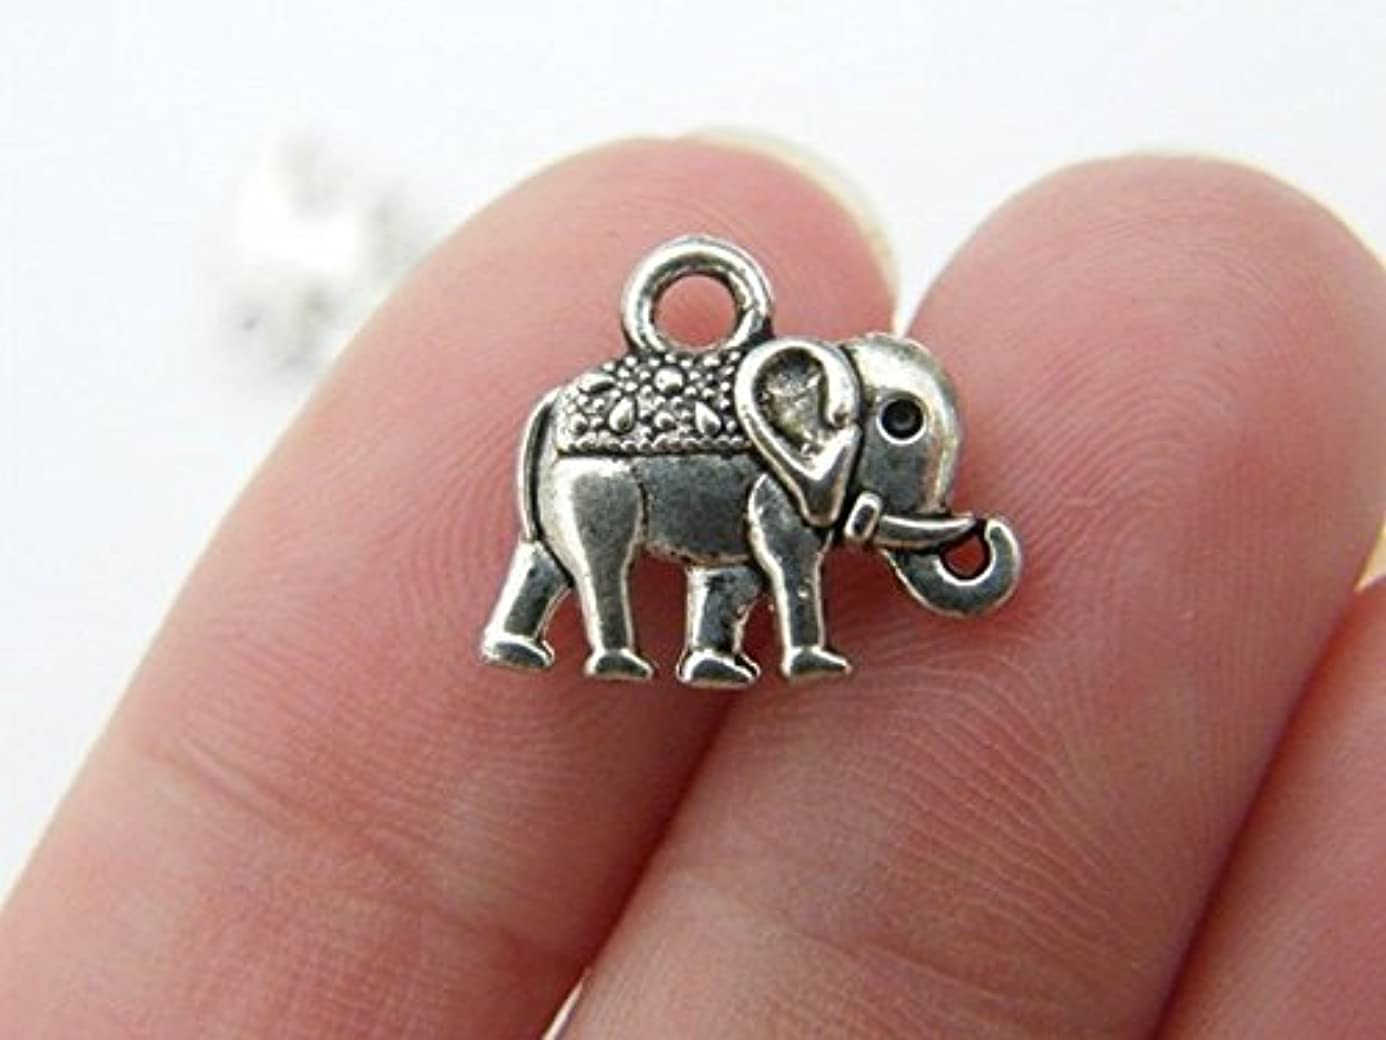 10 Elephant charms antique silver tone 13 mm x 12 mm (NS615) ypz5829876